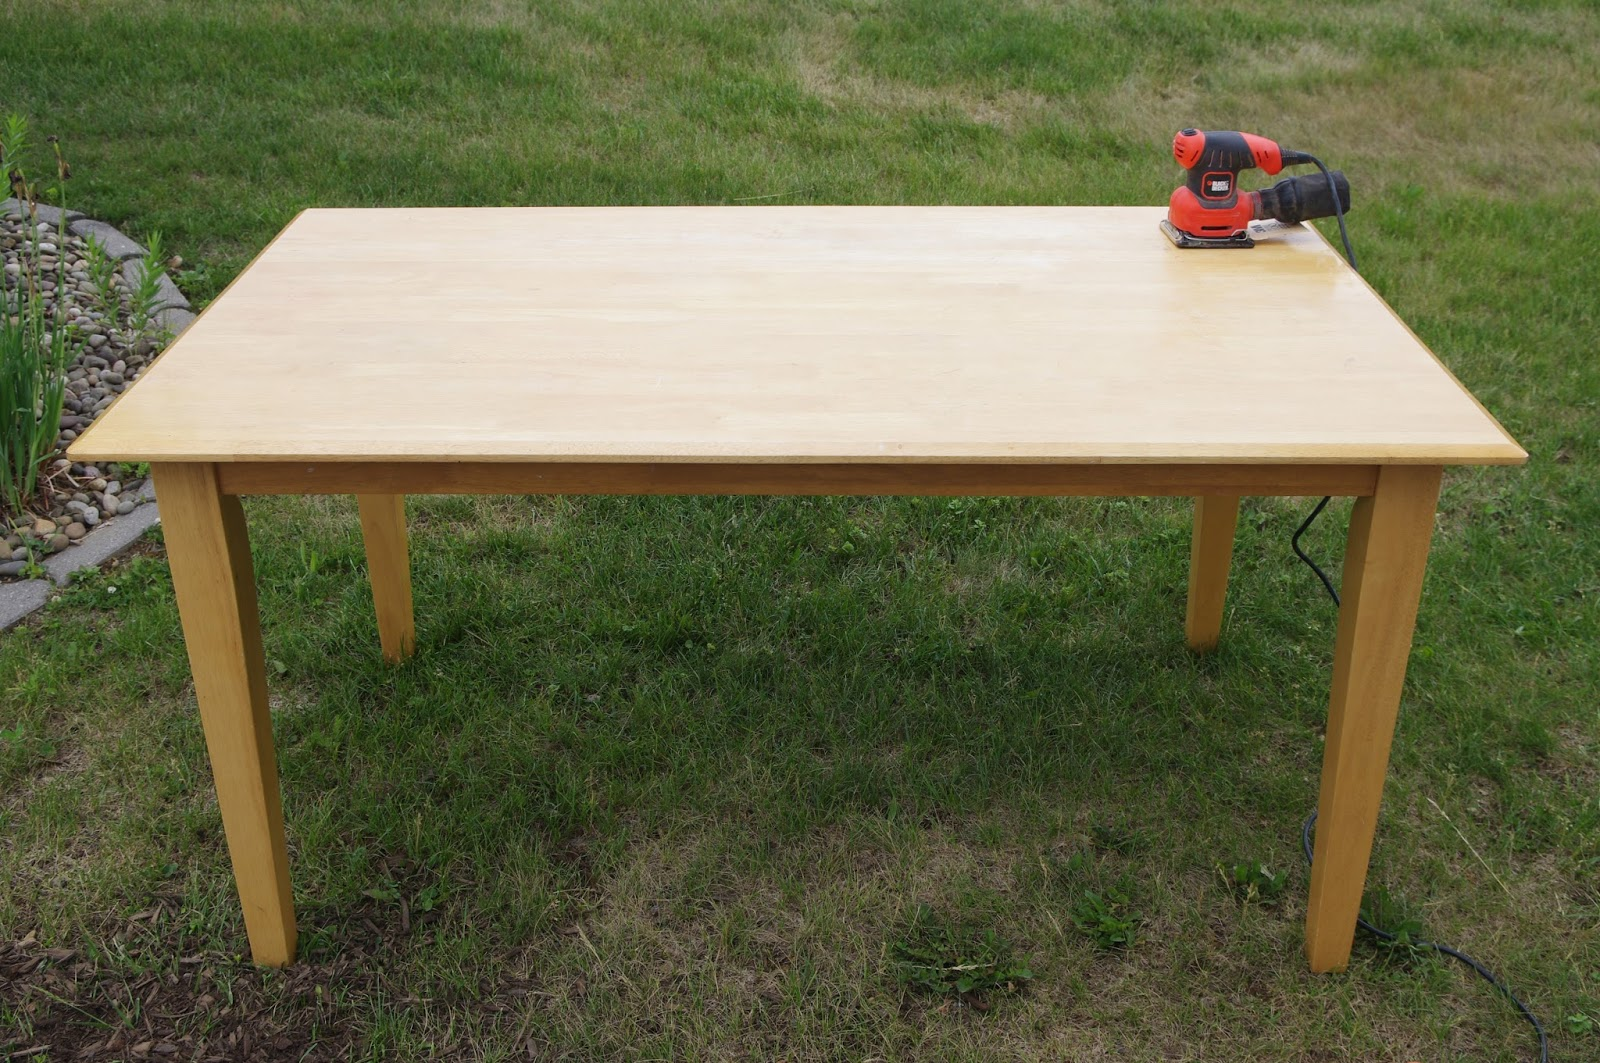 Nice My Husband Helped Me Carry The Table Outside Where I Used A Power Sander To  Strip The Old Finish And Reveal The Bare Wood.